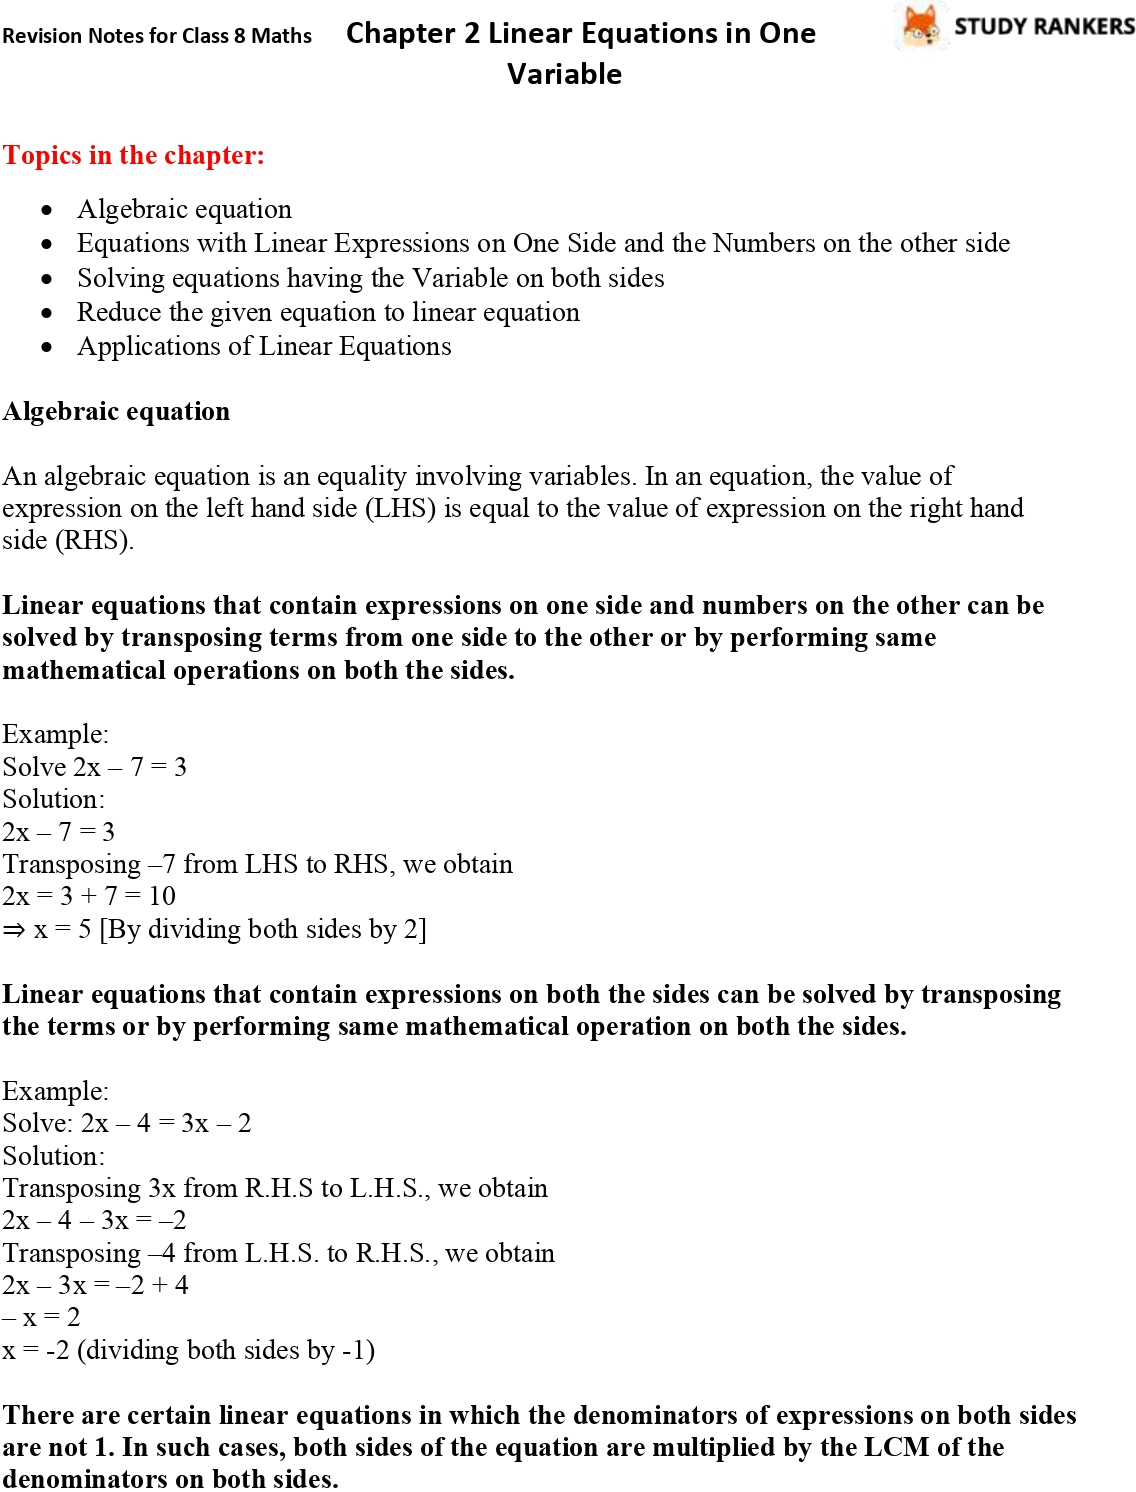 CBSE Revision Notes for Class 8 Chapter 2 Linear Equations in One Variable Part 1